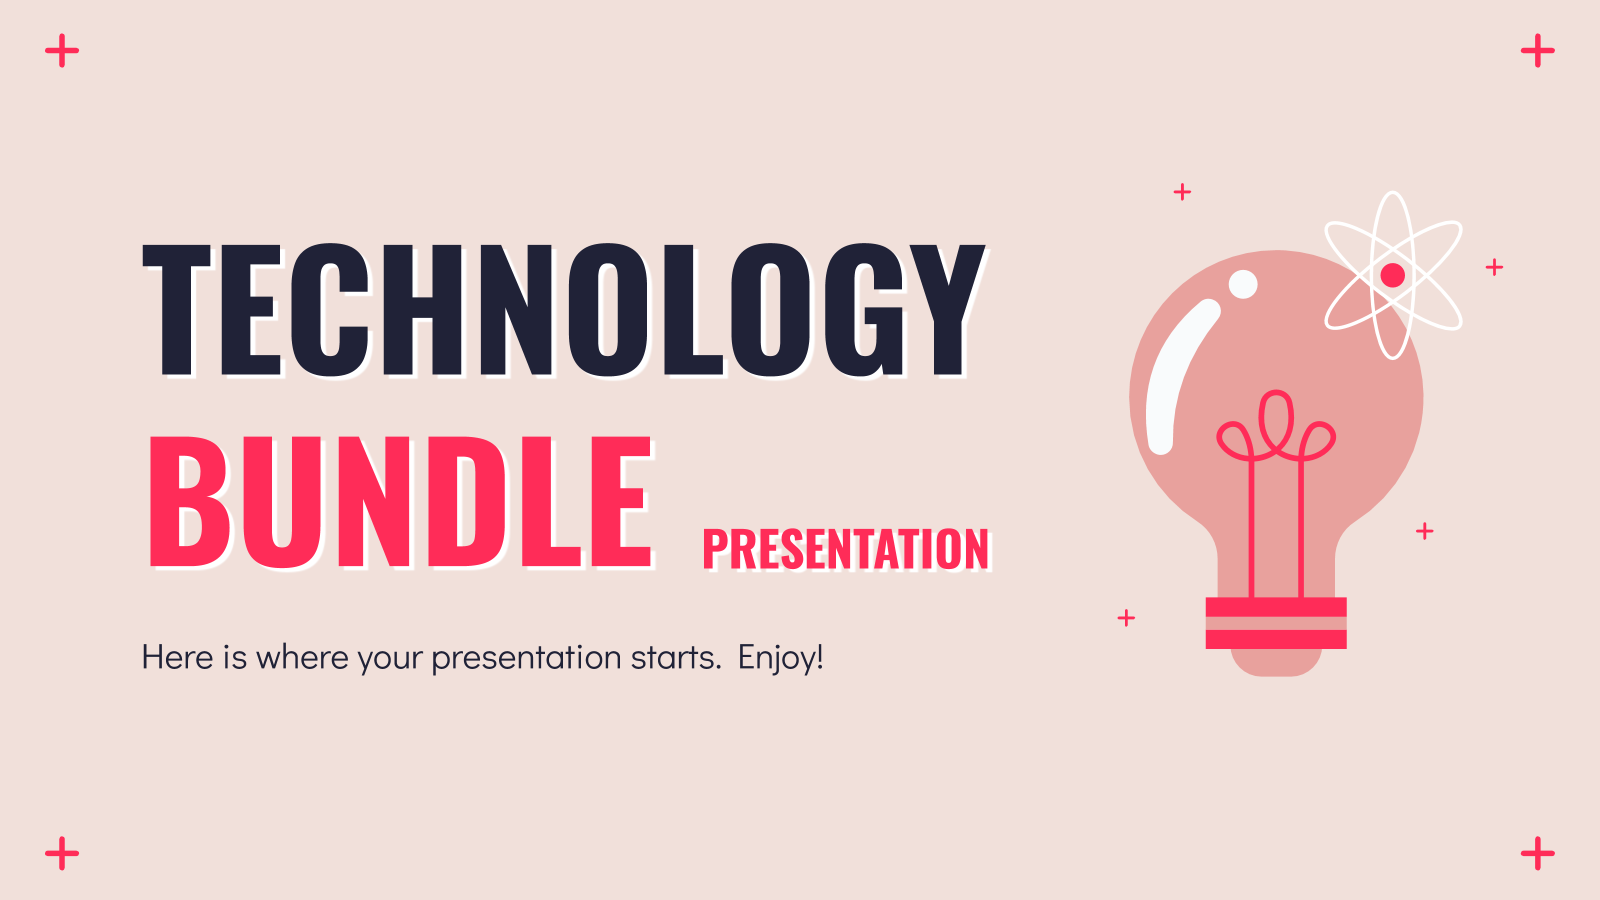 Technology Bundle presentation template